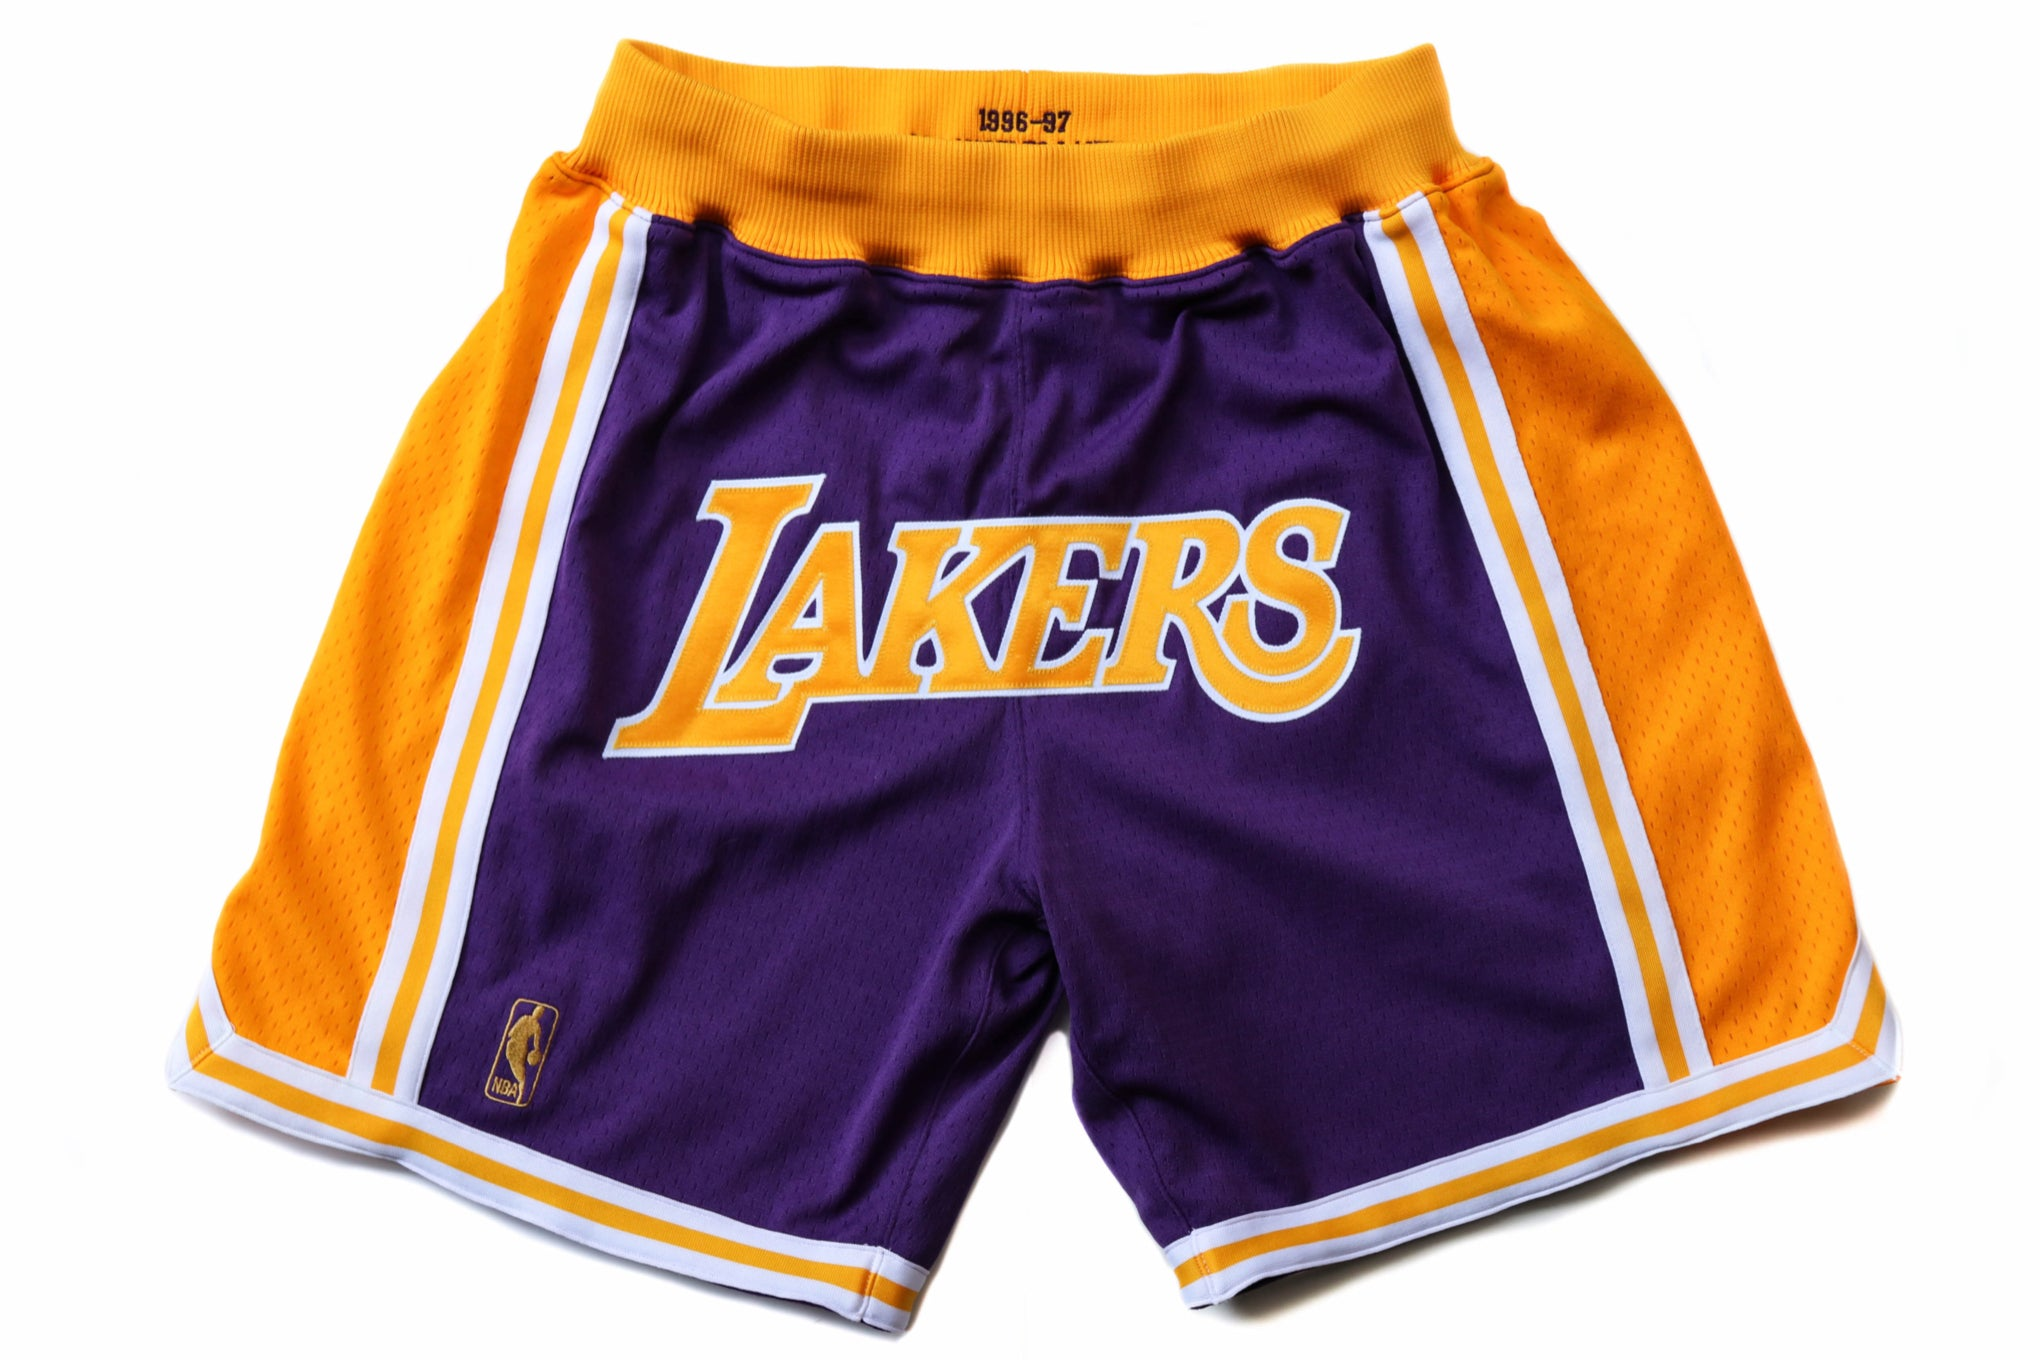 394ea4a4 lakers mitchell and ness shorts LeBron James leads the NBA jersey sales